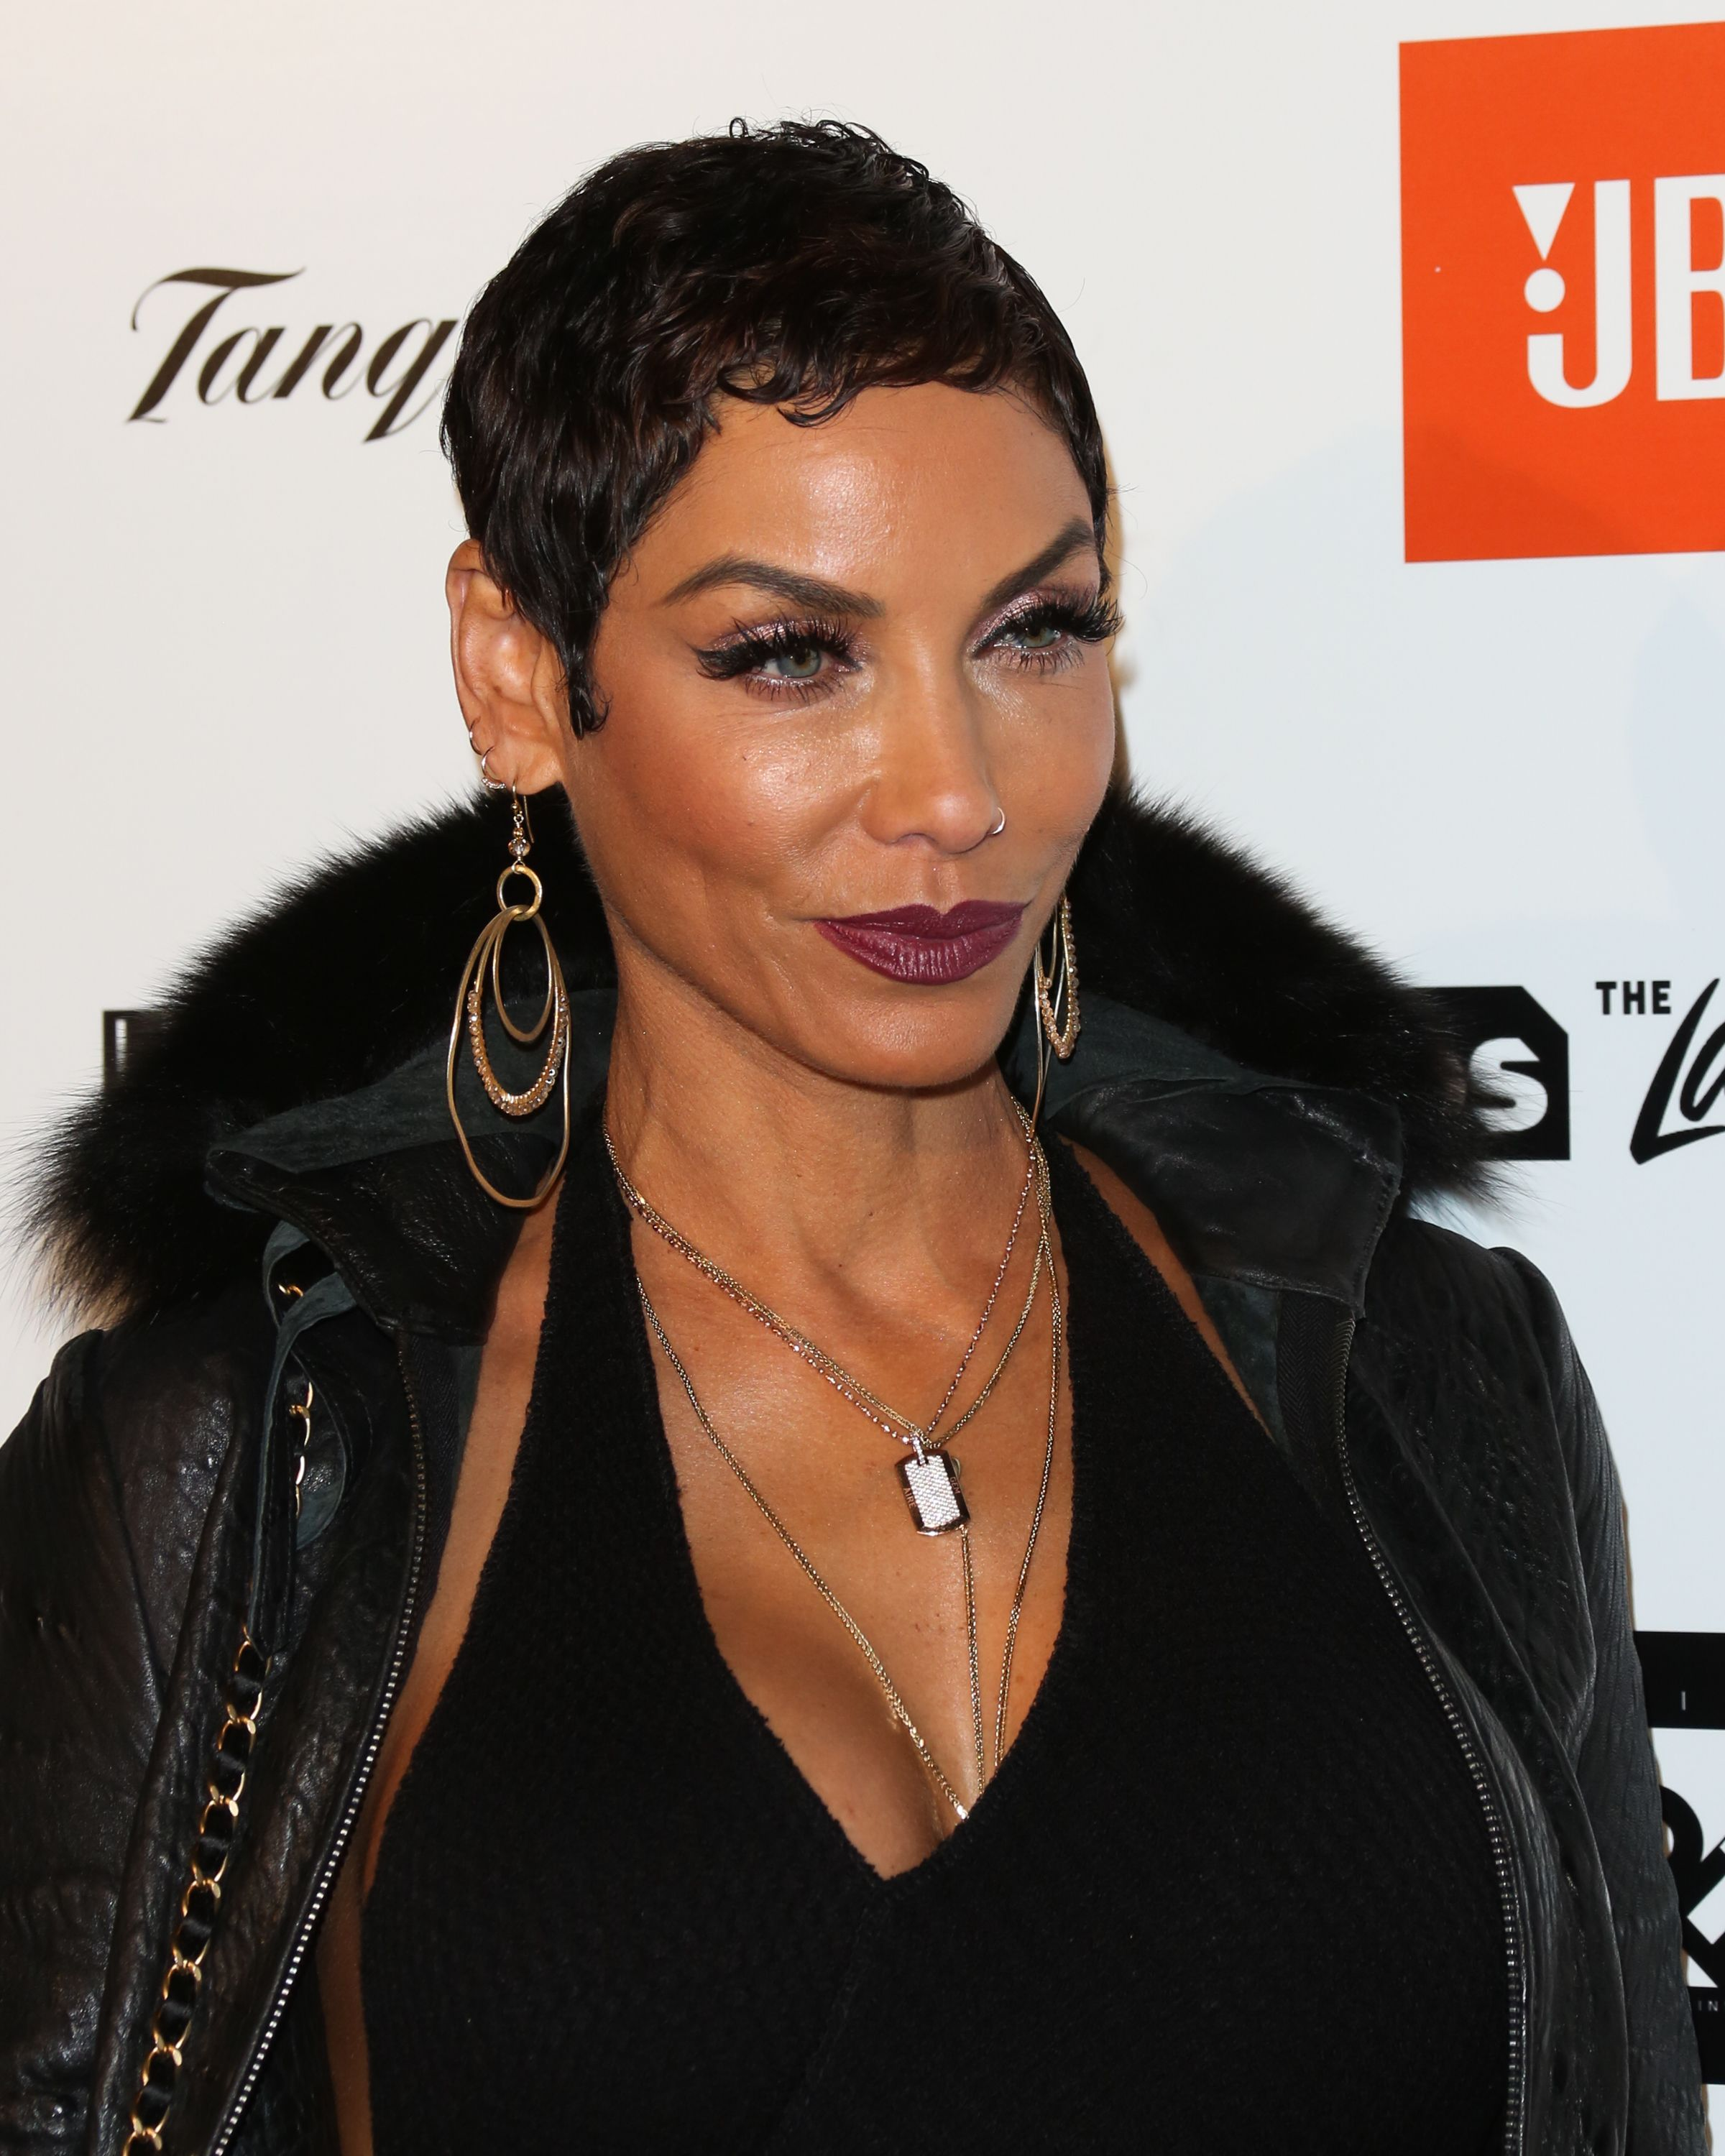 Nicole Murphy at Kenny 'The Jet' Smith's annual All-Star bash in California on February 16, 2018. | Photo: Getty Images